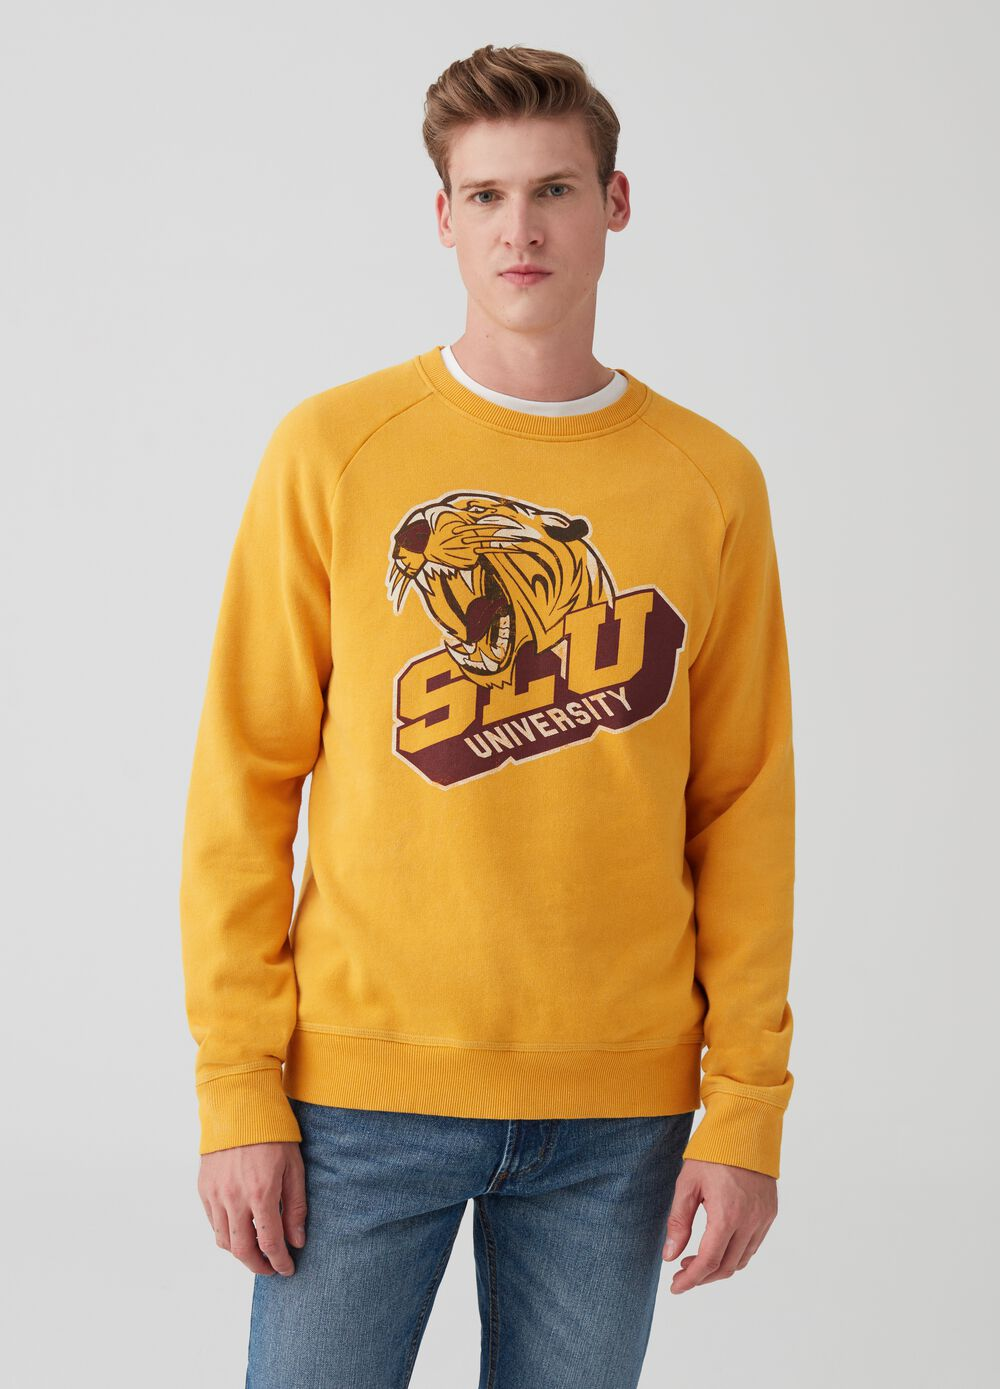 Sweatshirt with raglan sleeves and print